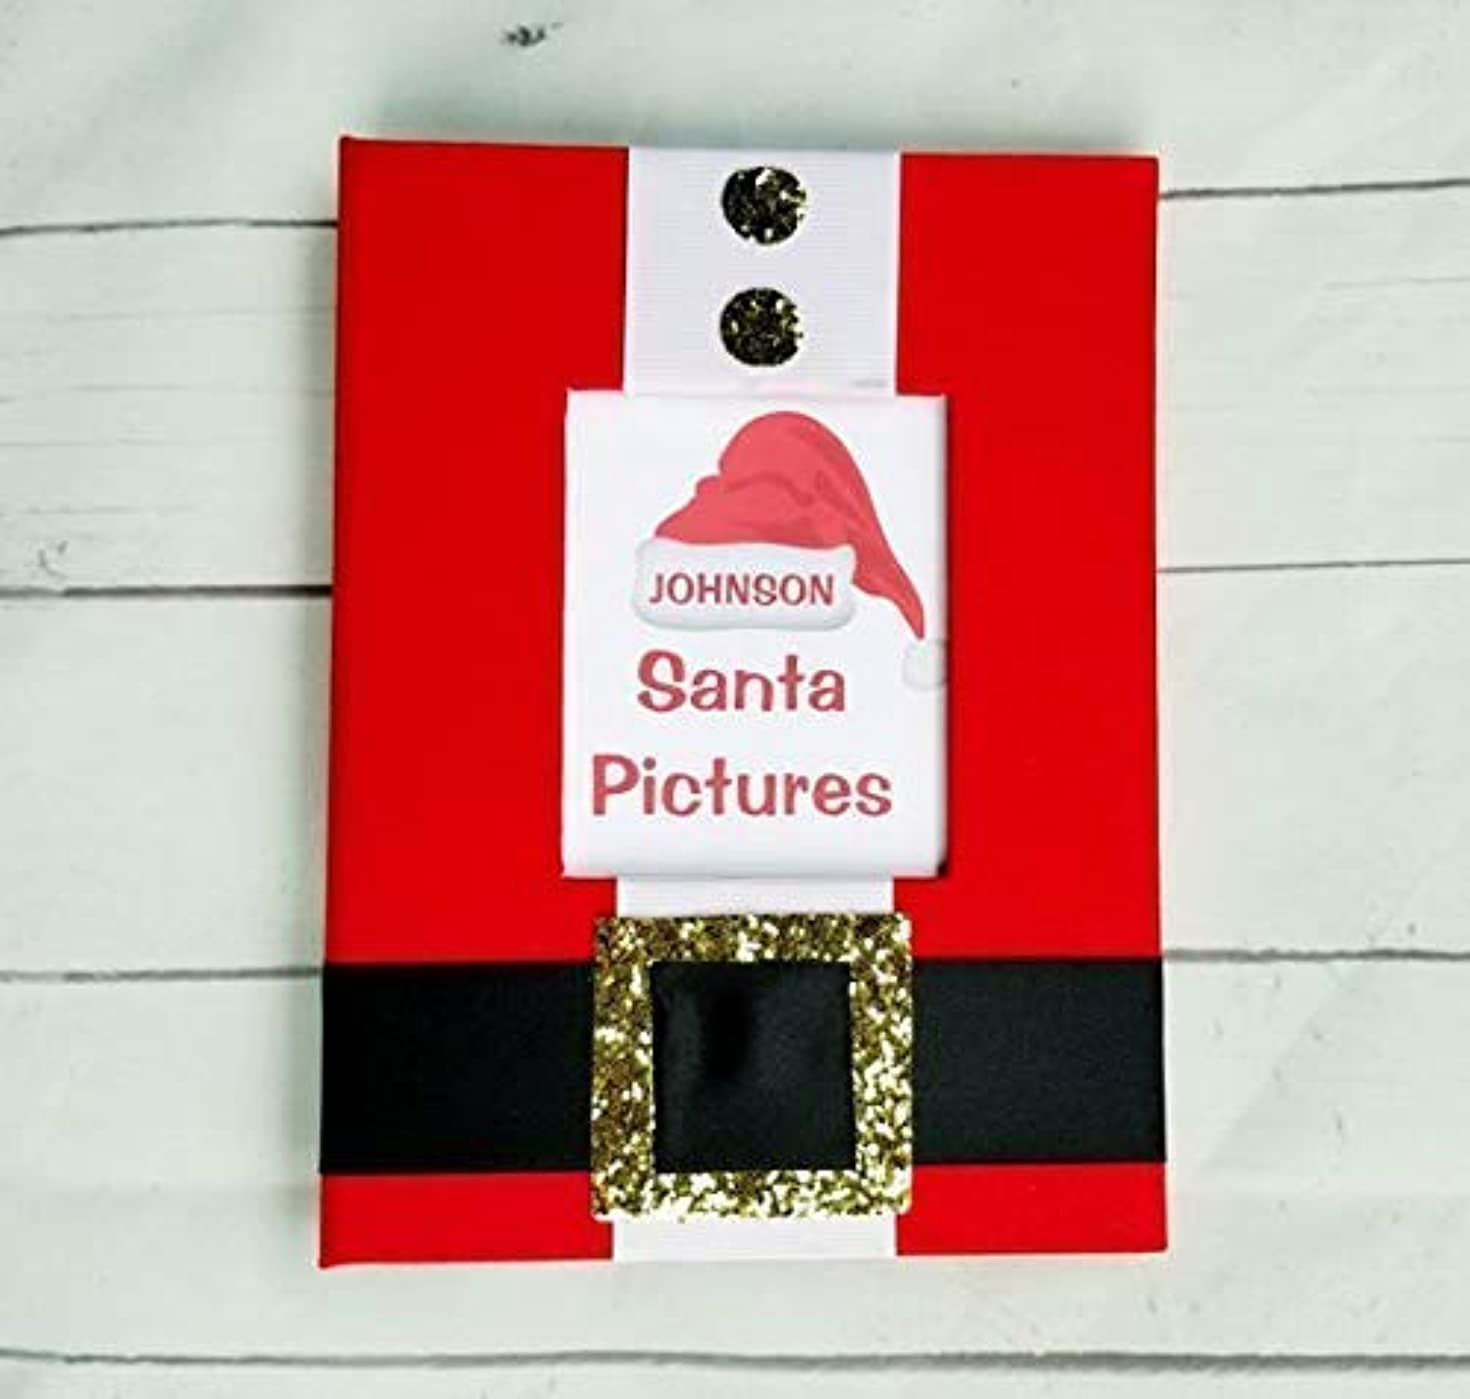 Custom Santa Pictures 5x7 Photo Book - Brag Book Album Gift Present Grandparents Christmas Memories Every Year Kids Children Yearly Xmas Visit Red